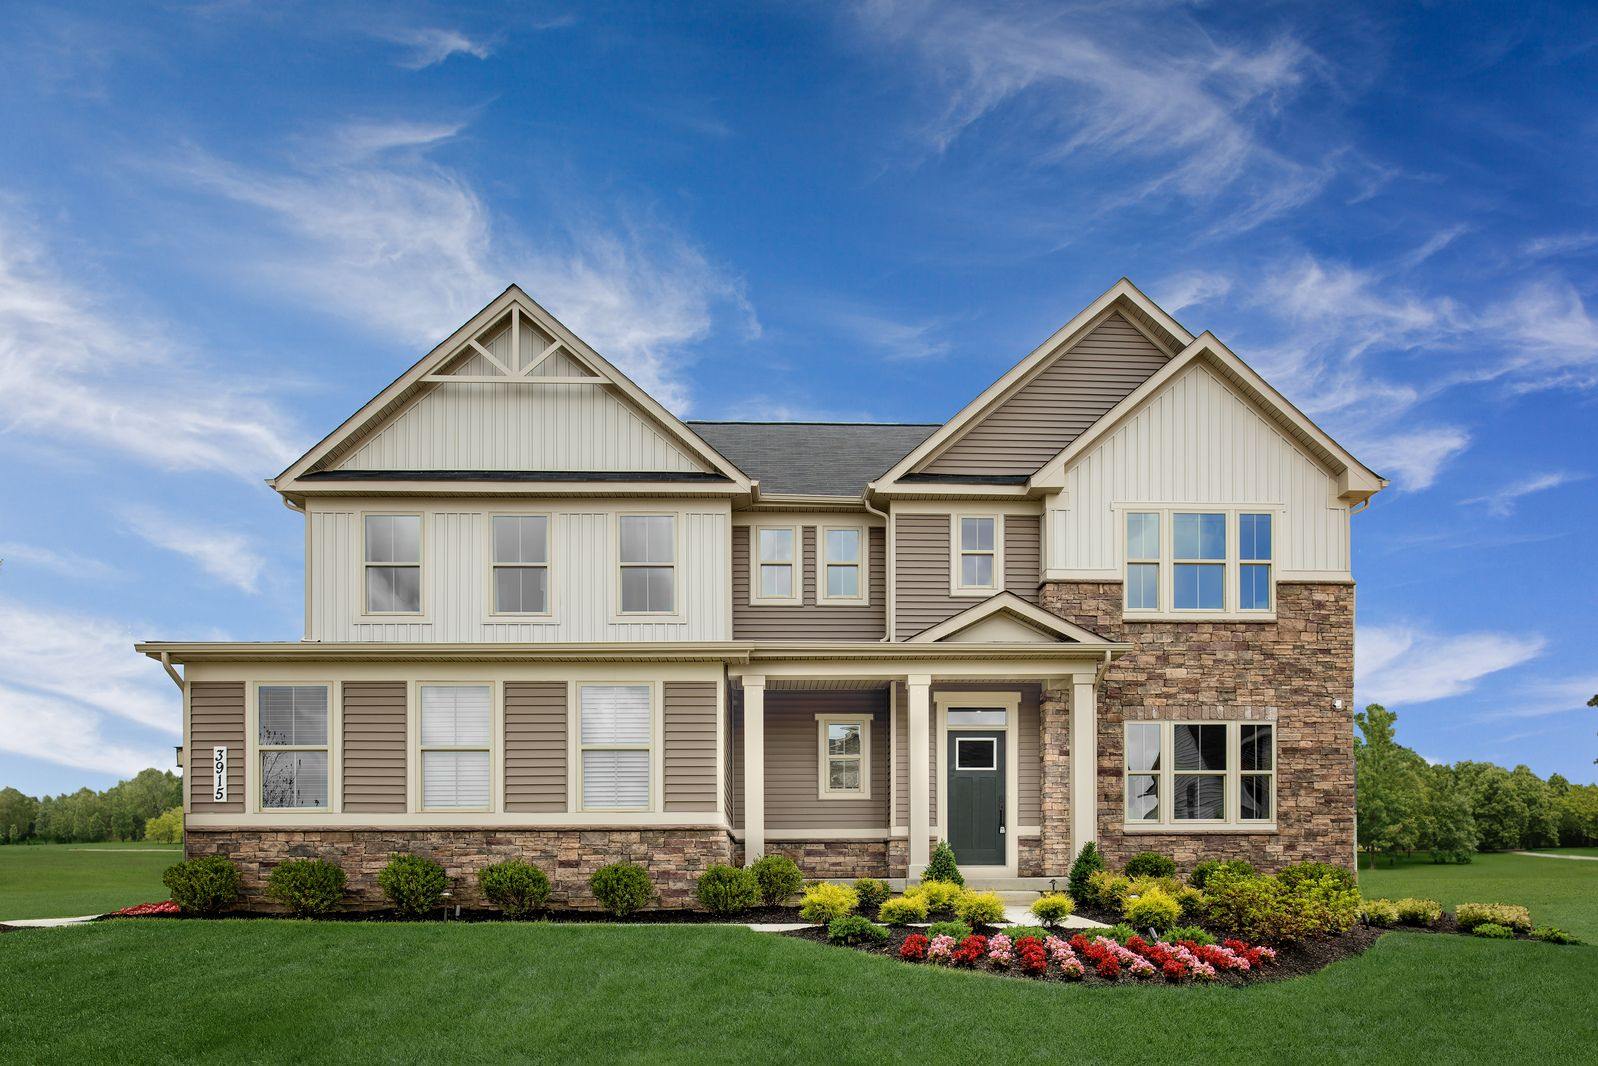 WELCOME TO DANVILLE ESTATES IN BRANDYWINE, MD:Move up and get all the space you need inside and out here at The Preserve at Danville Estates.Click HERE to schedule your visit.